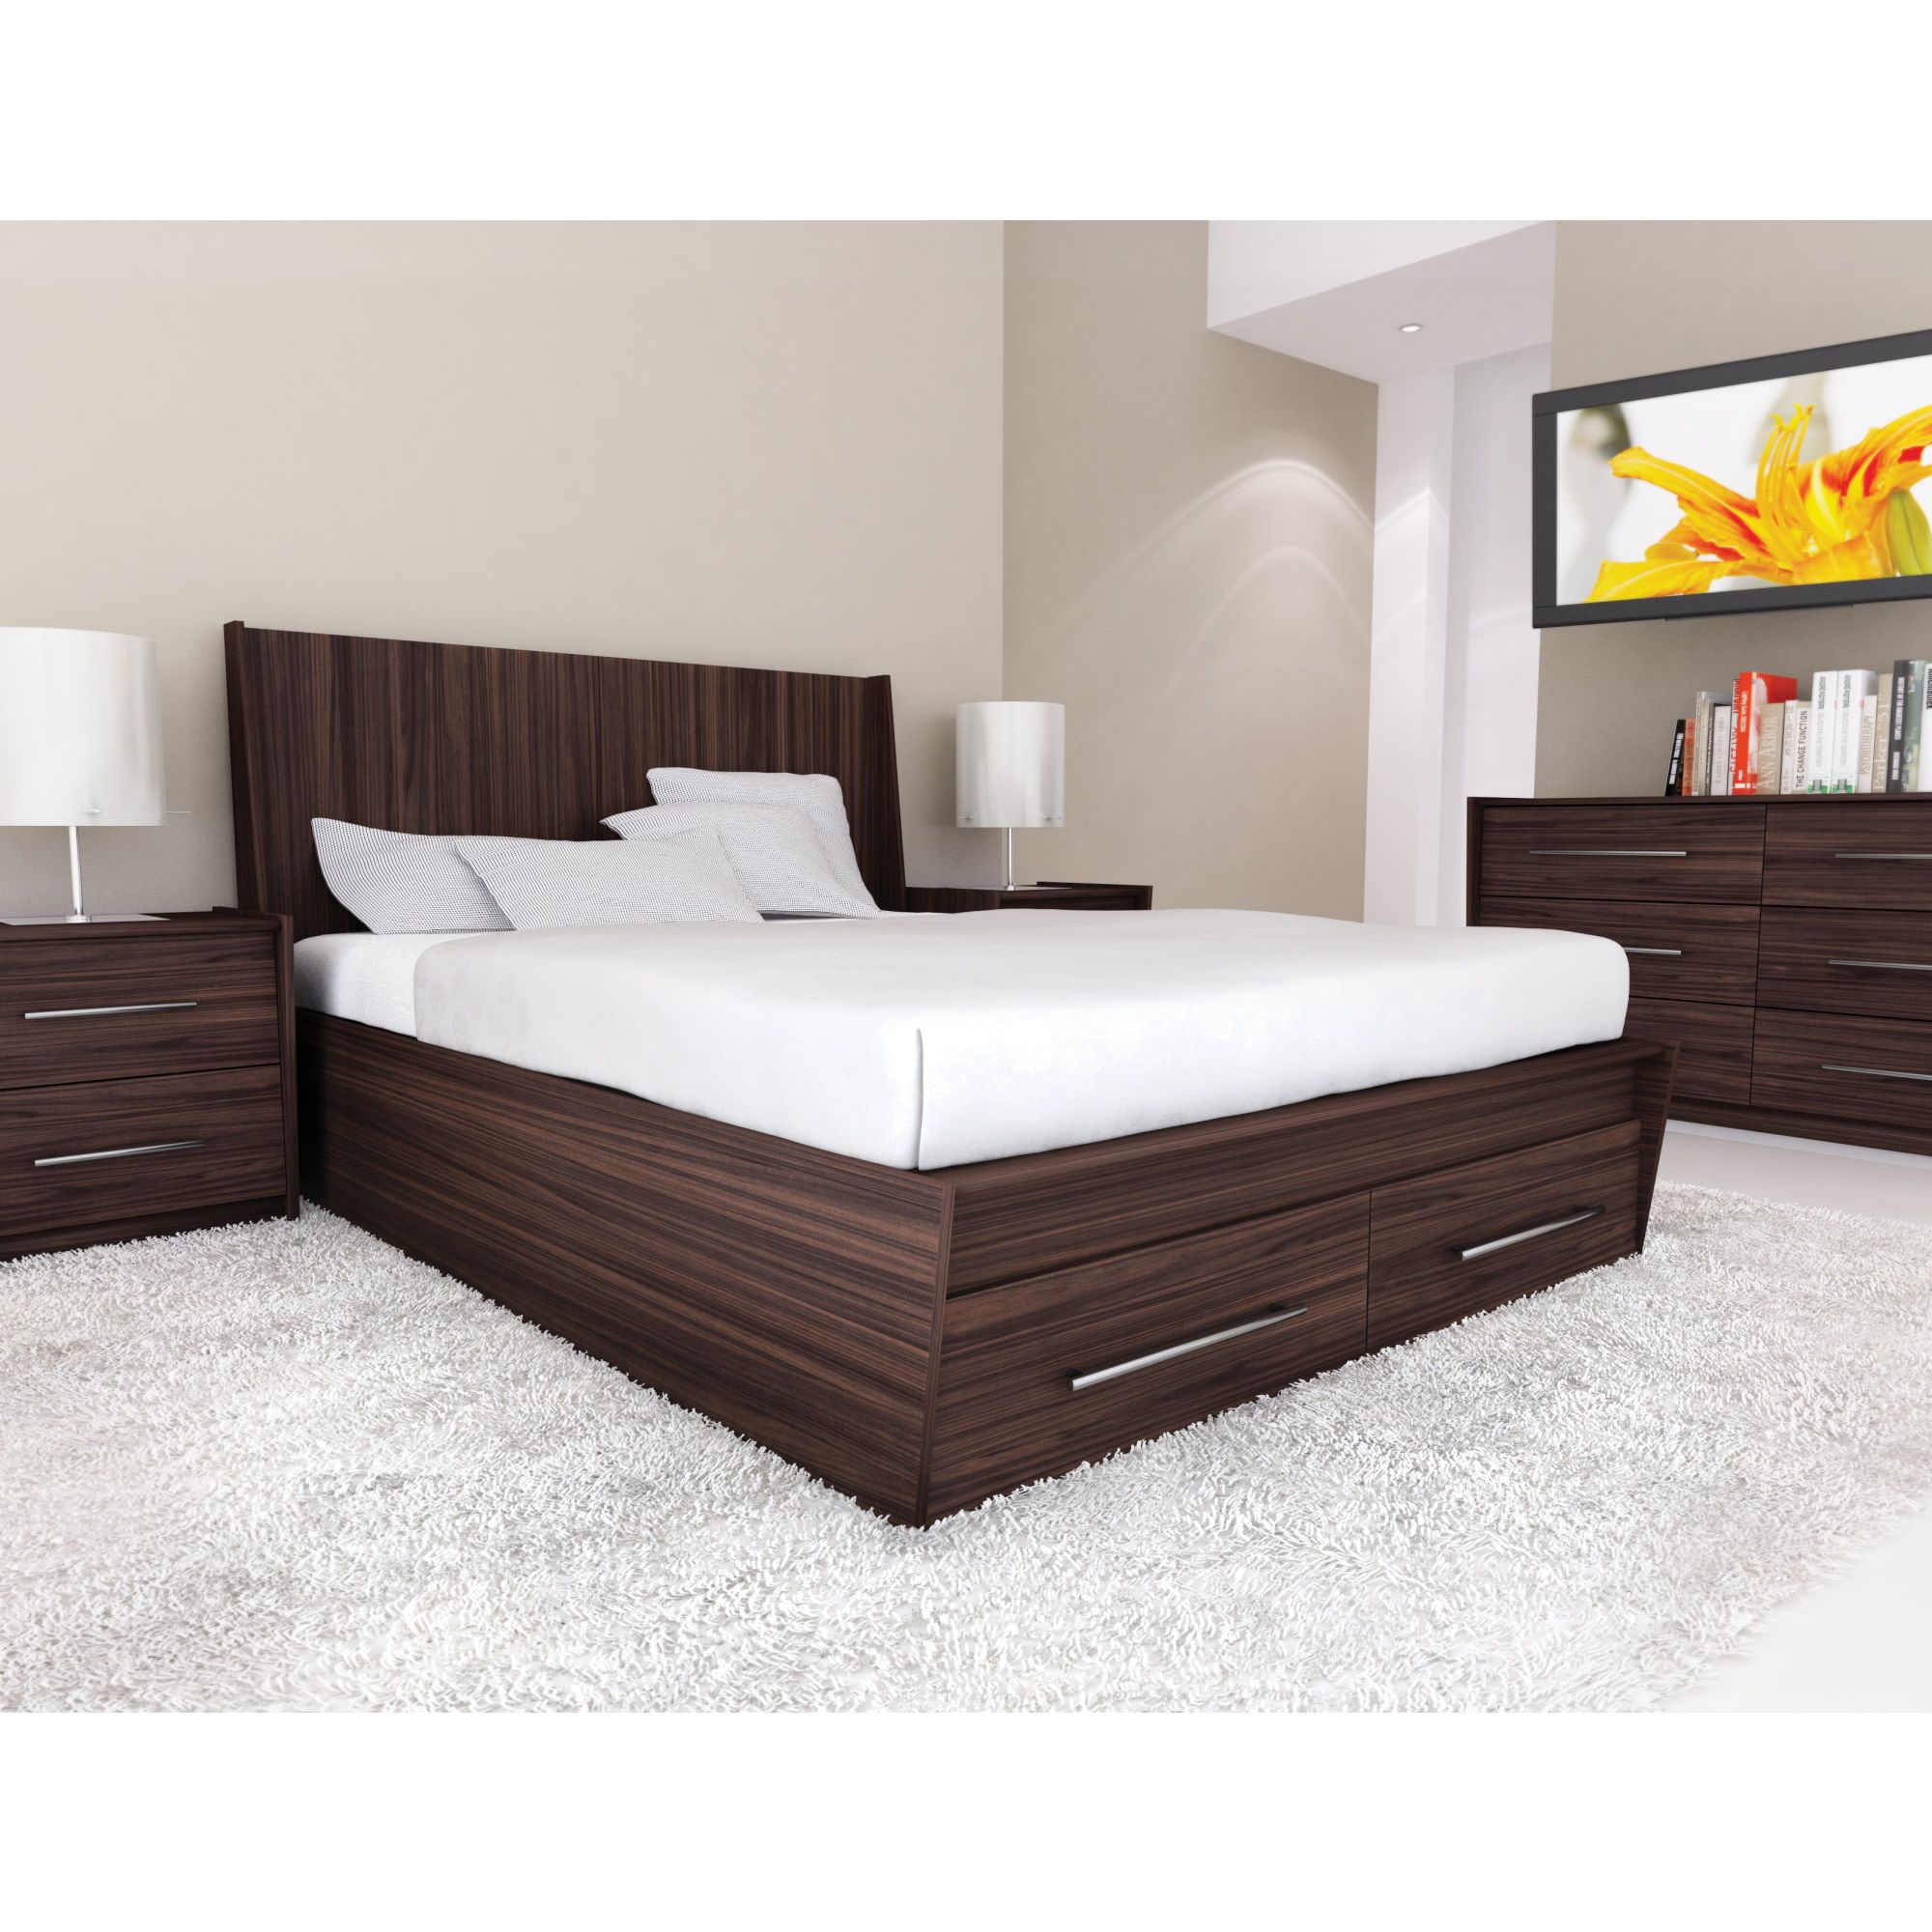 Bed designs for your comfortable bedroom interior design for Wooden bed interior design